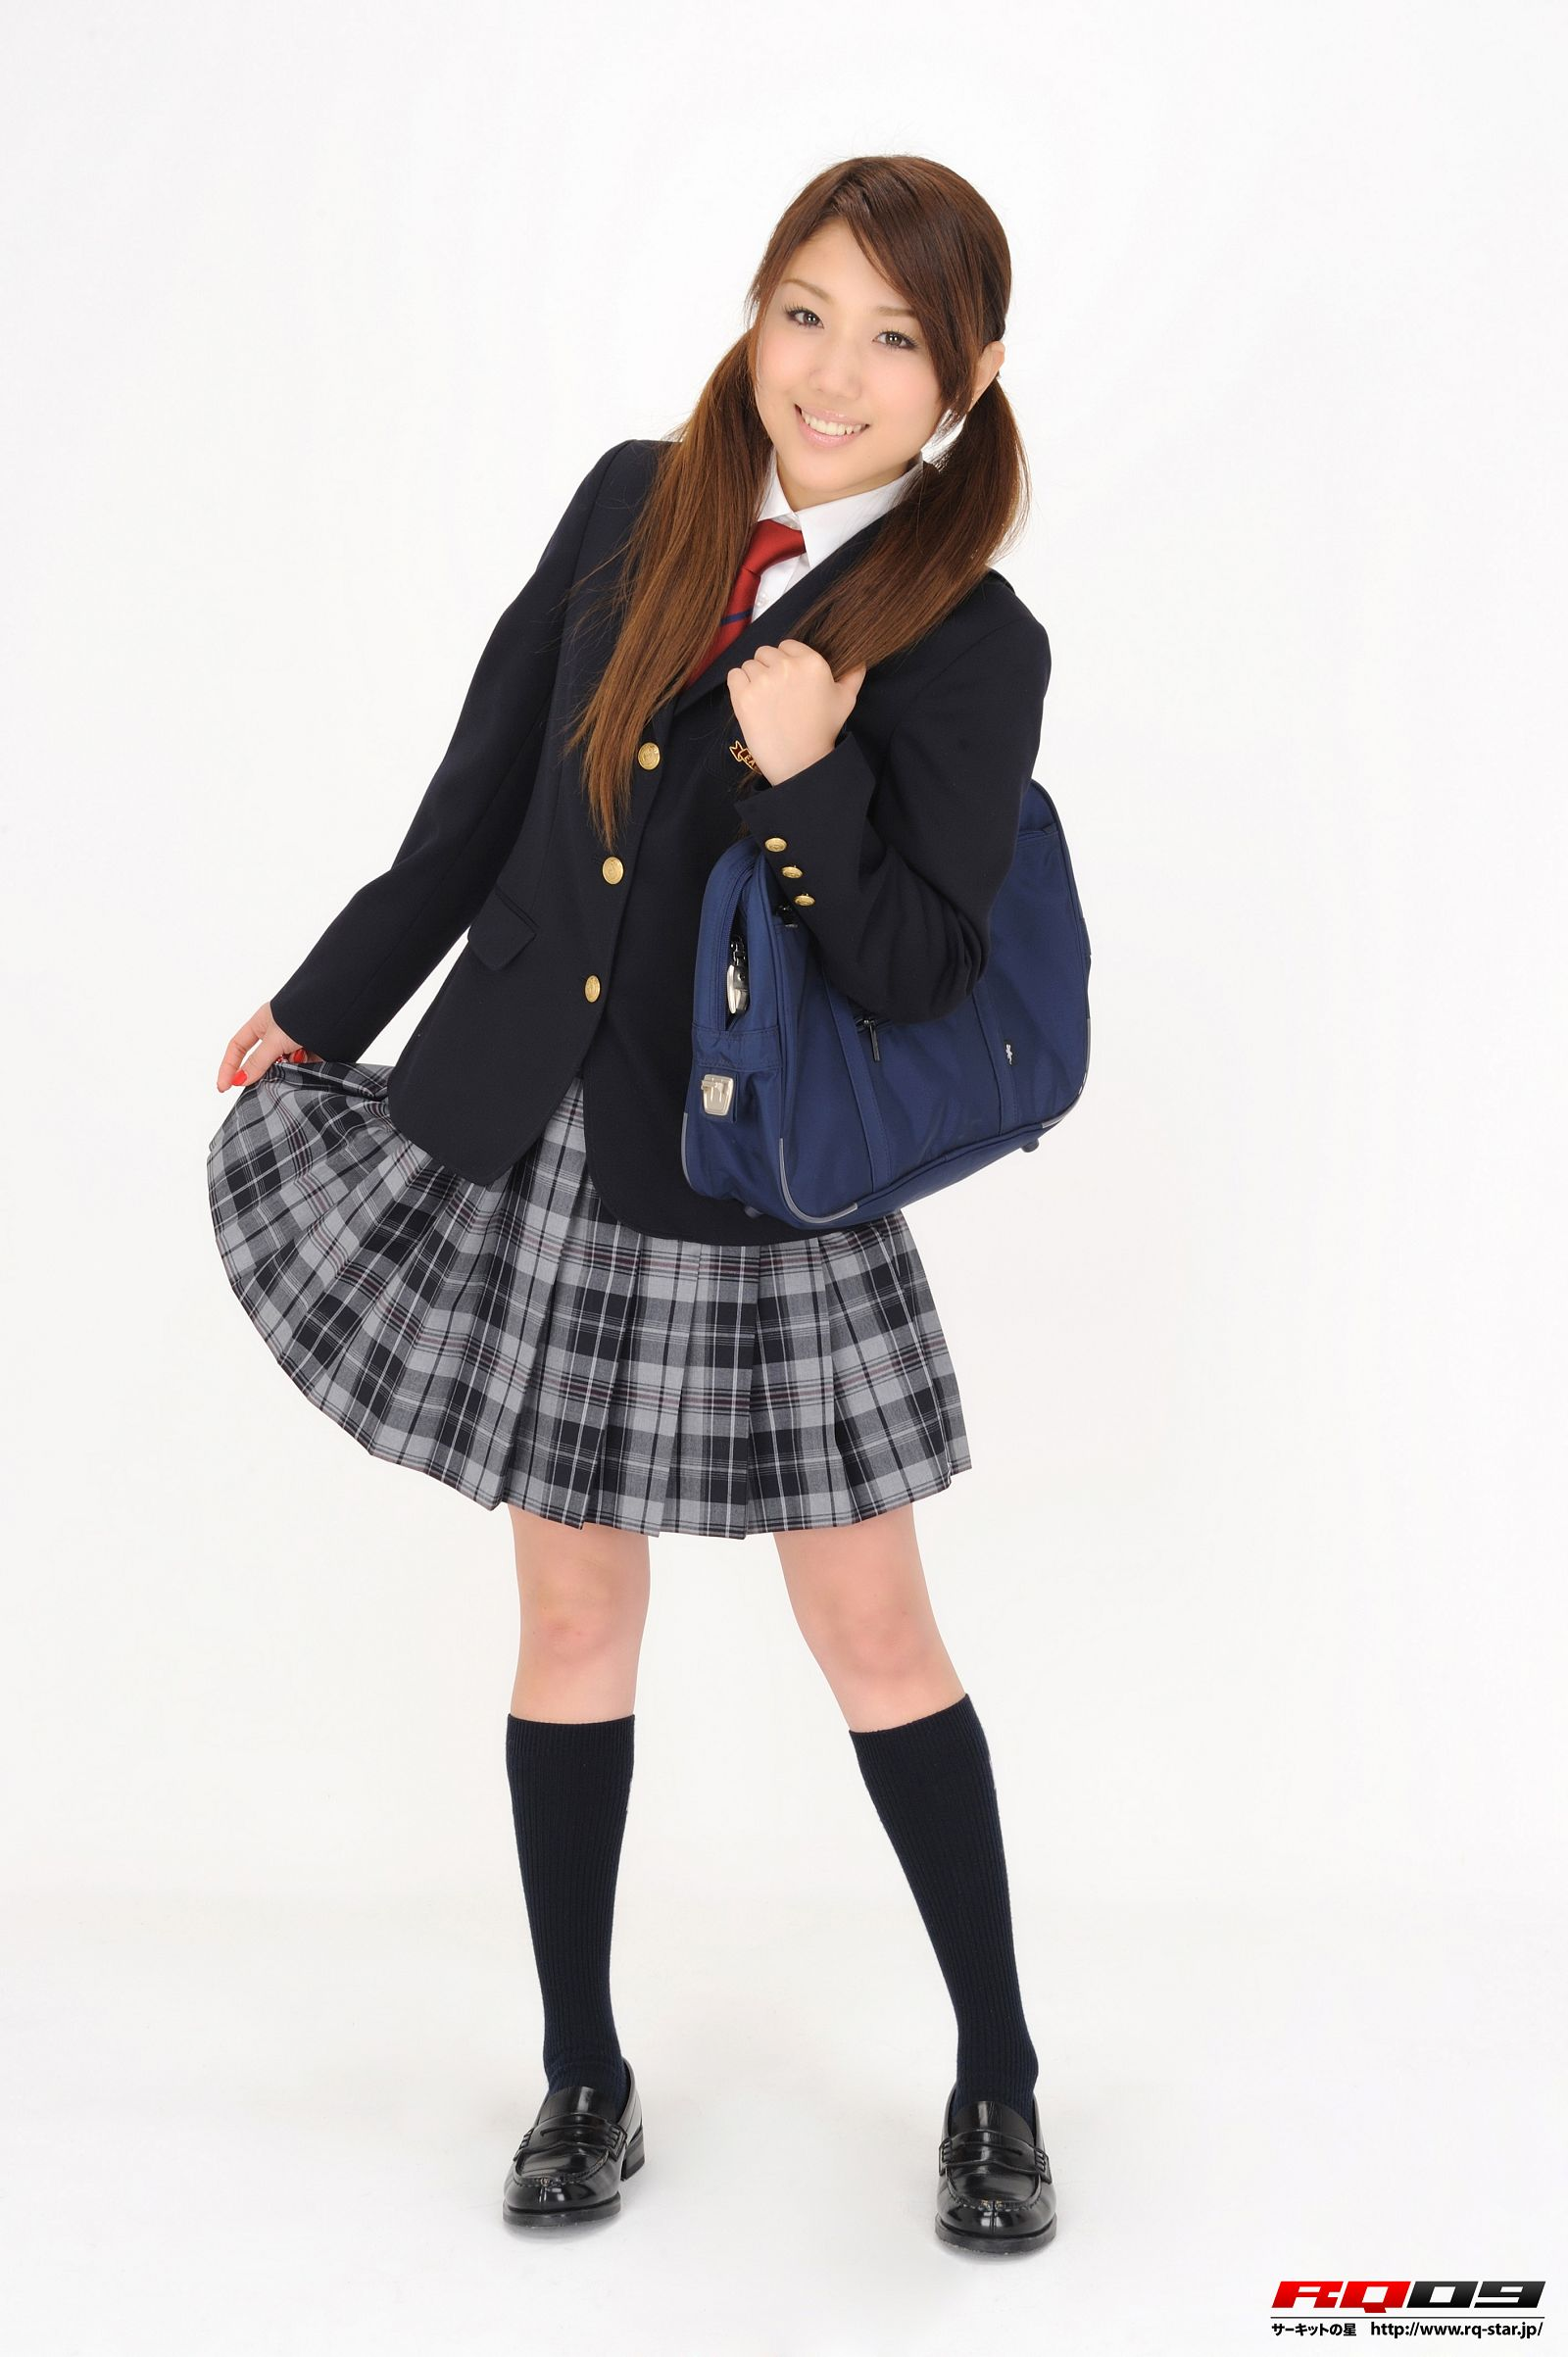 [RQ STAR美女] NO.0252 Arisa Kimura 木村亜梨沙 School Uniforms[115P] RQ STAR 第2张